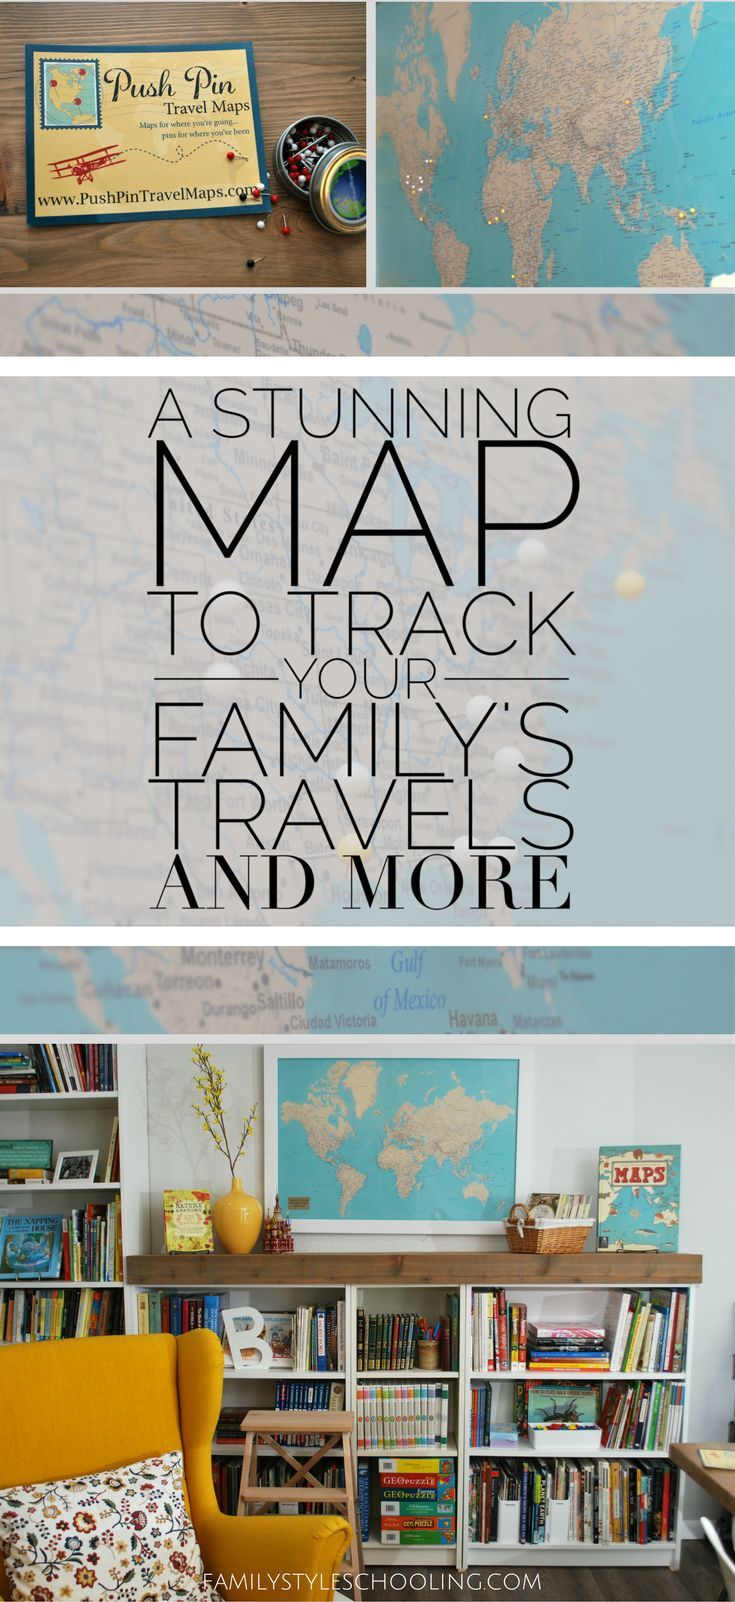 42 best The Best of Family Style Schooling images on Pinterest ...